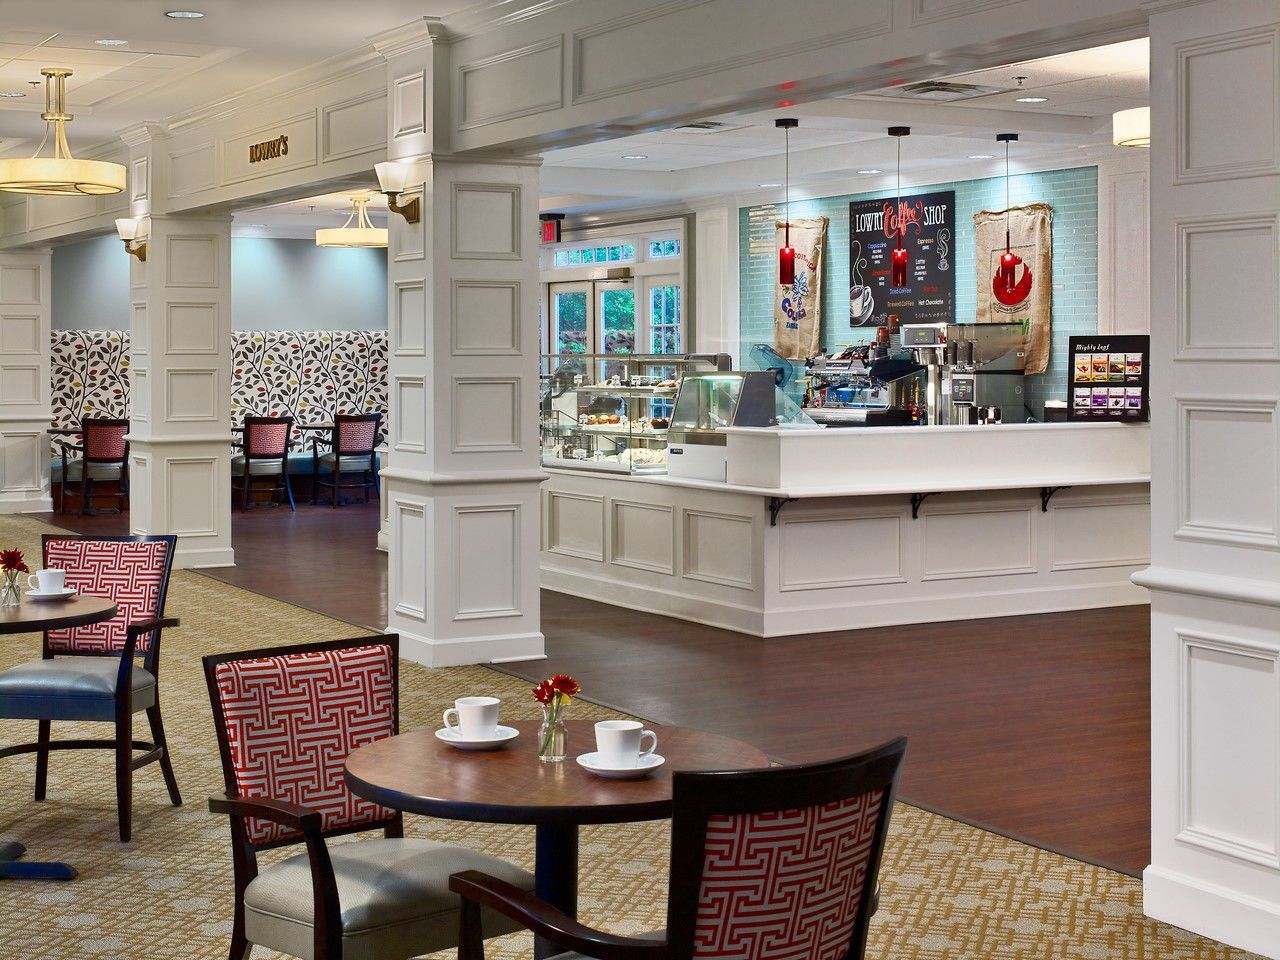 Still Hopes Episcopal Retirement Community | Renovation and Expansion Cafe THW